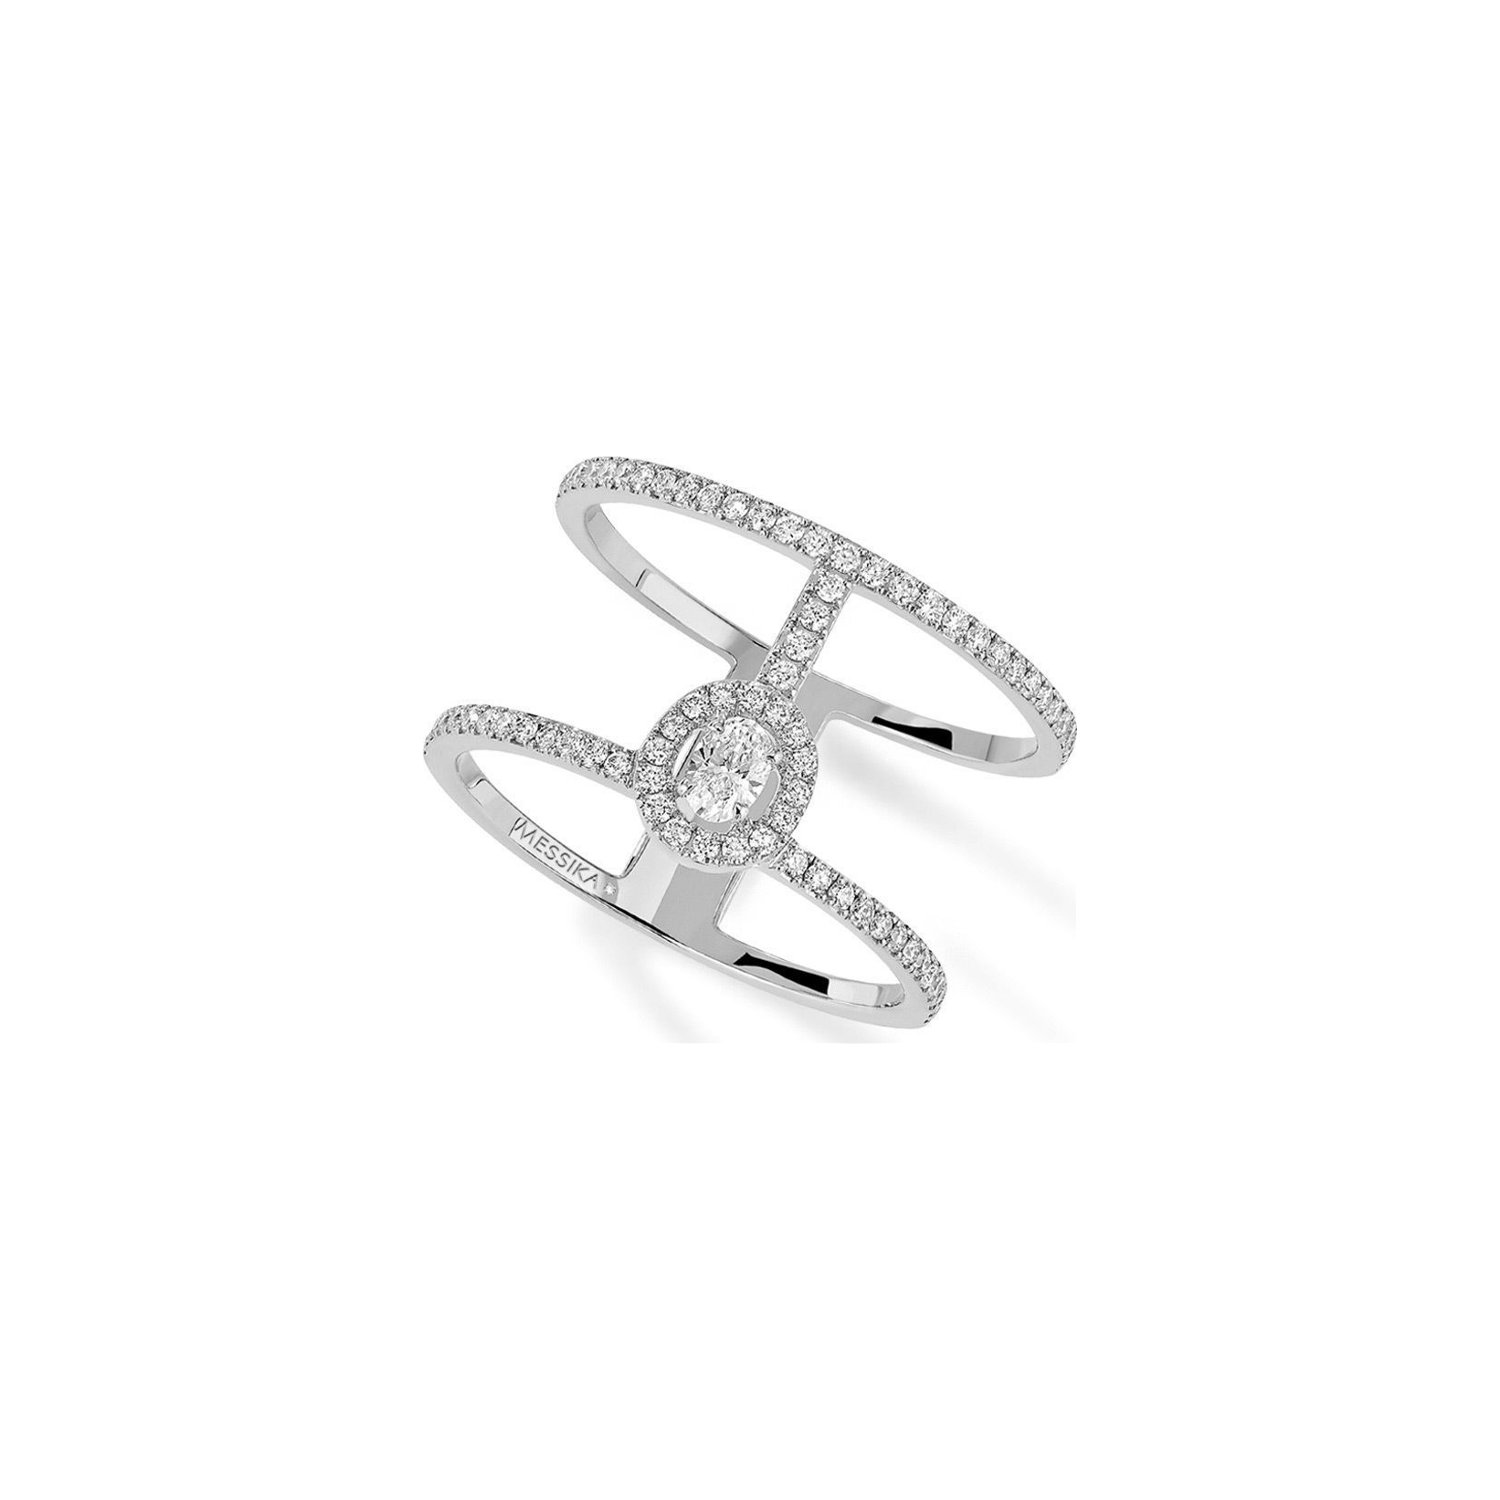 Bague Messika Glam'Azone Amazone 2 rangs en or blanc et pavés de diamants